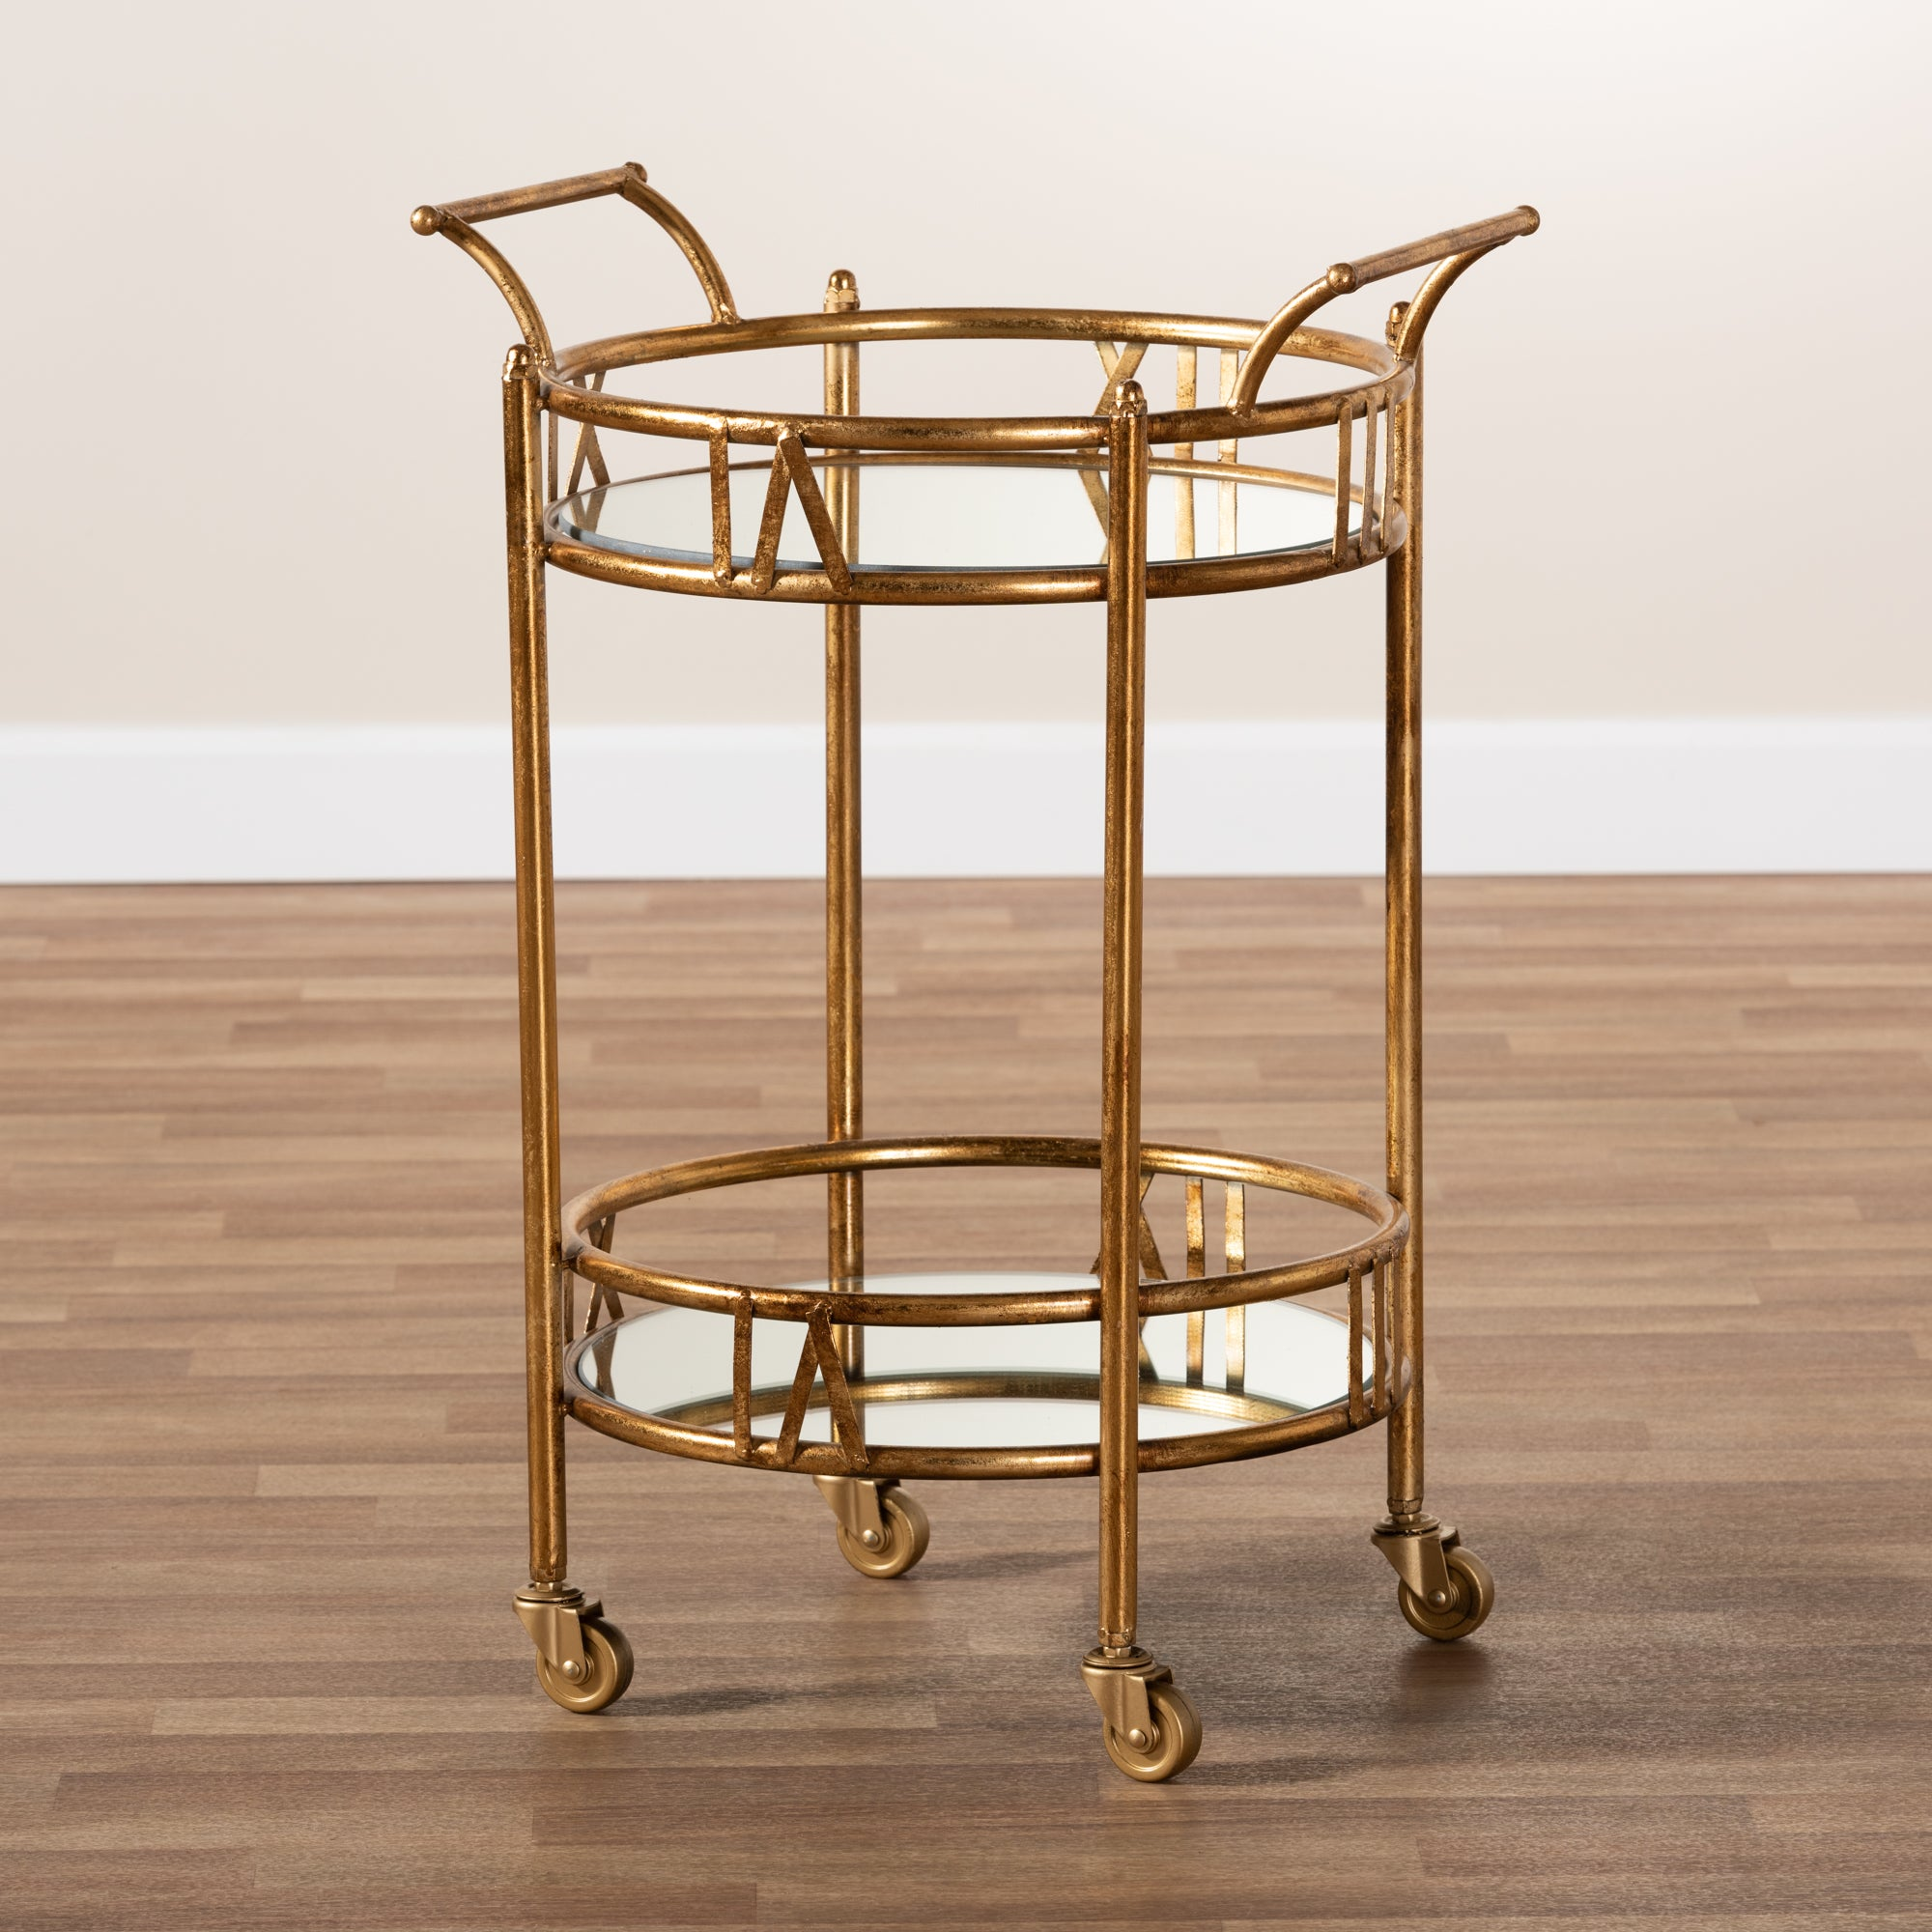 Antique Gold Baxton Studio Trolleys and Carts